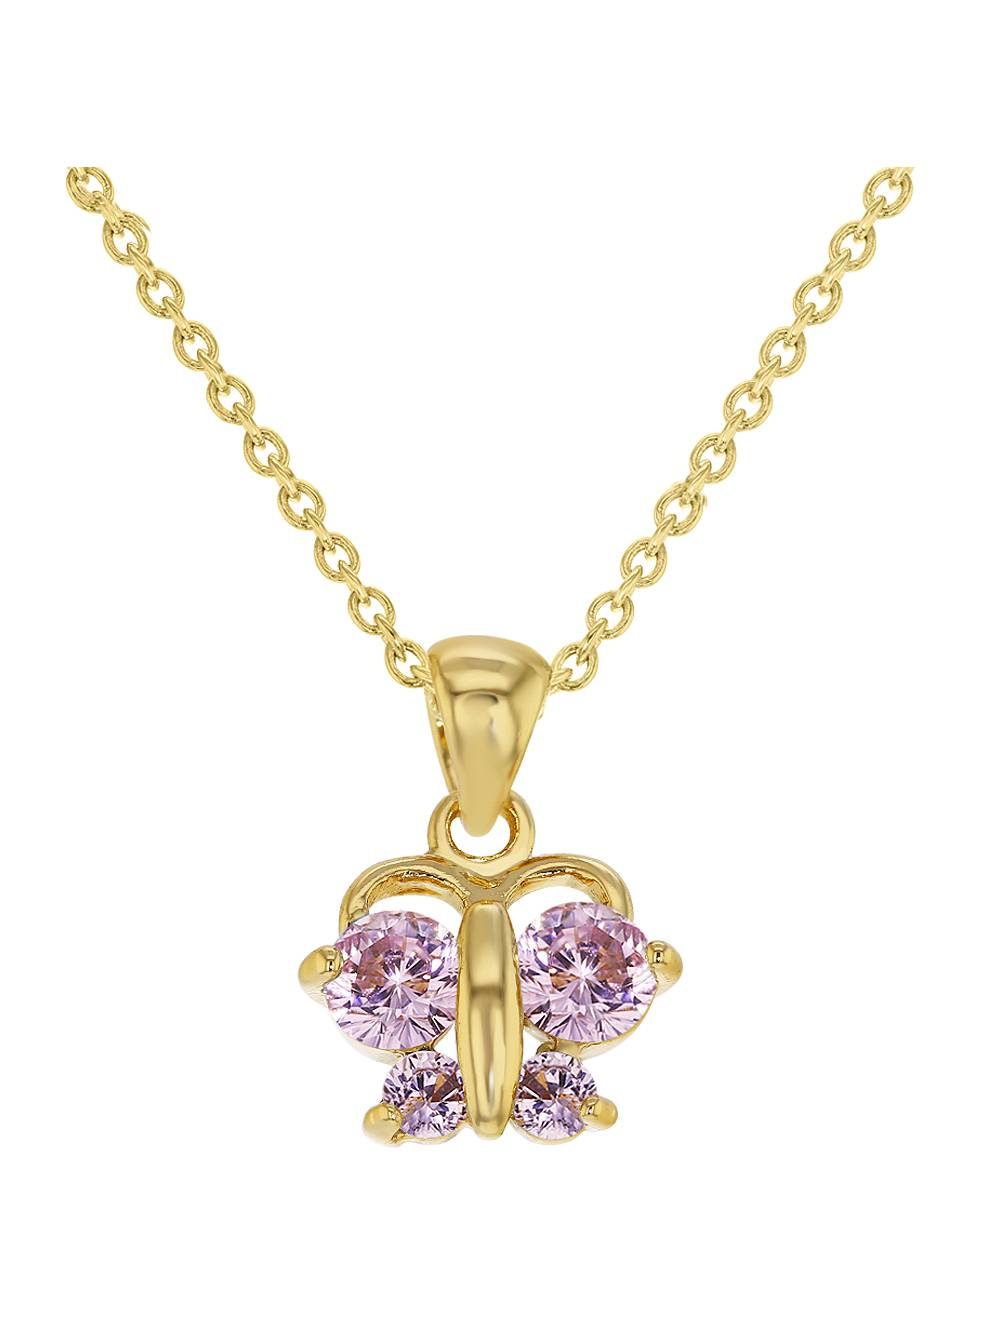 In Season Jewelry 18k Gold Plated Pink Butterfly Pendant Necklace Toddler Girls Children 16""